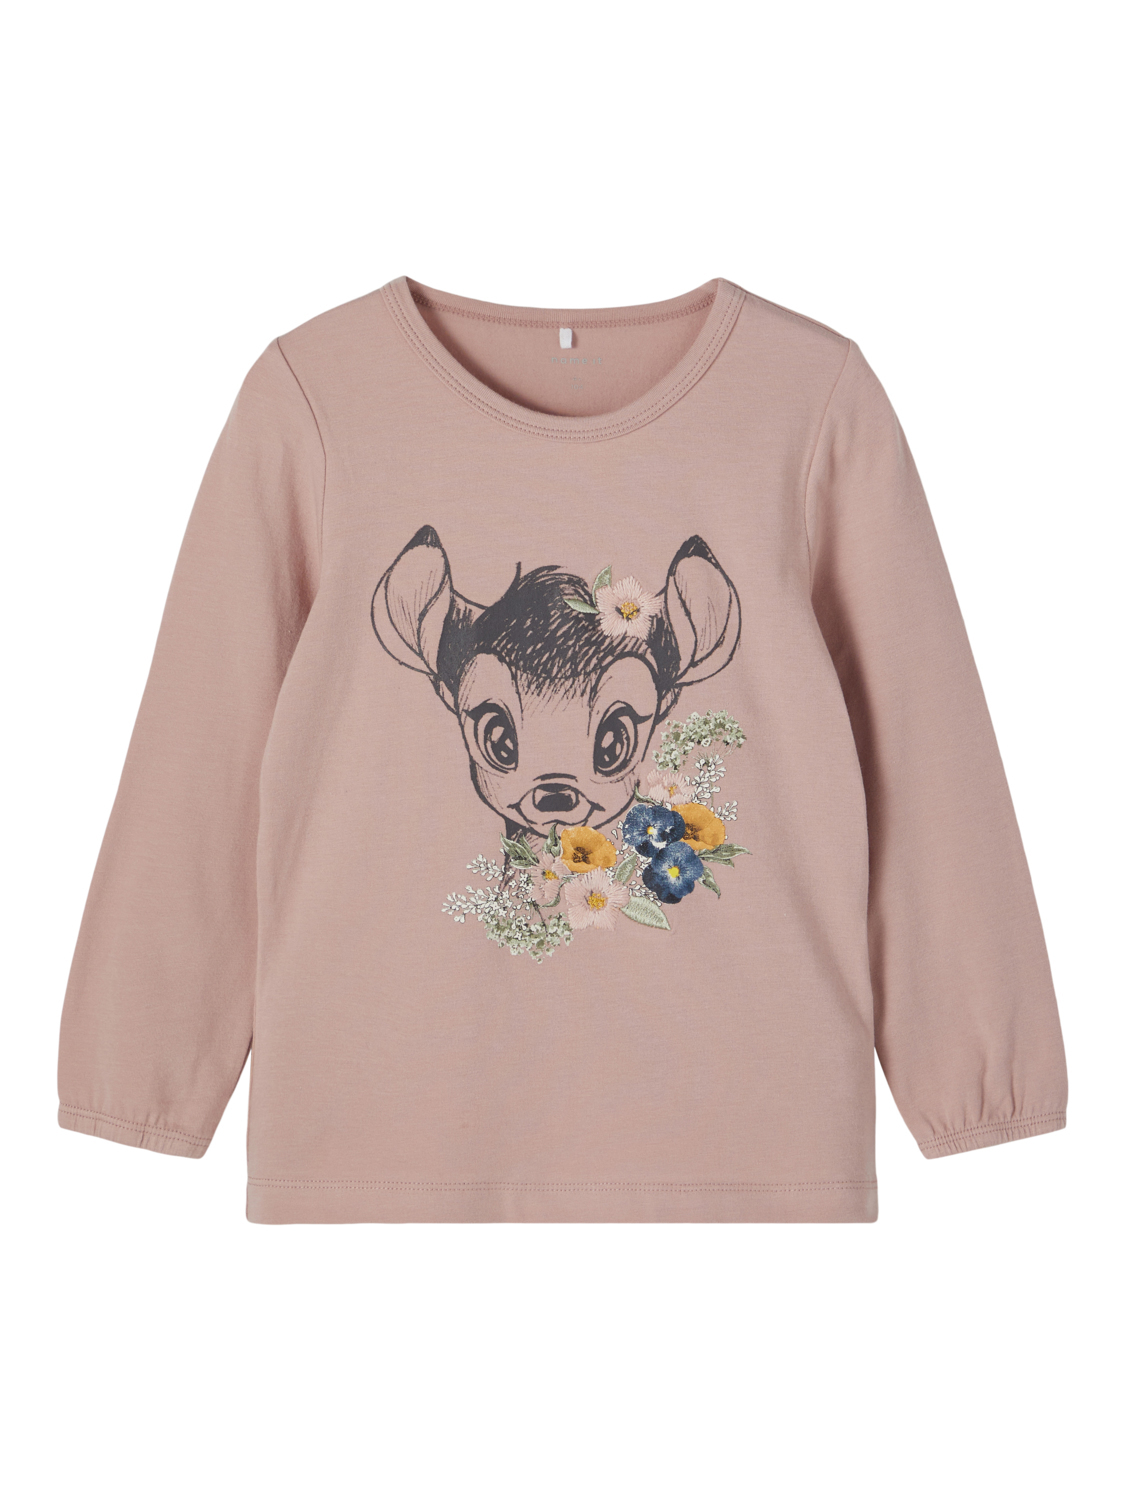 Name It genser Bambi jente – Name It rosa genser Bambi – Mio Trend